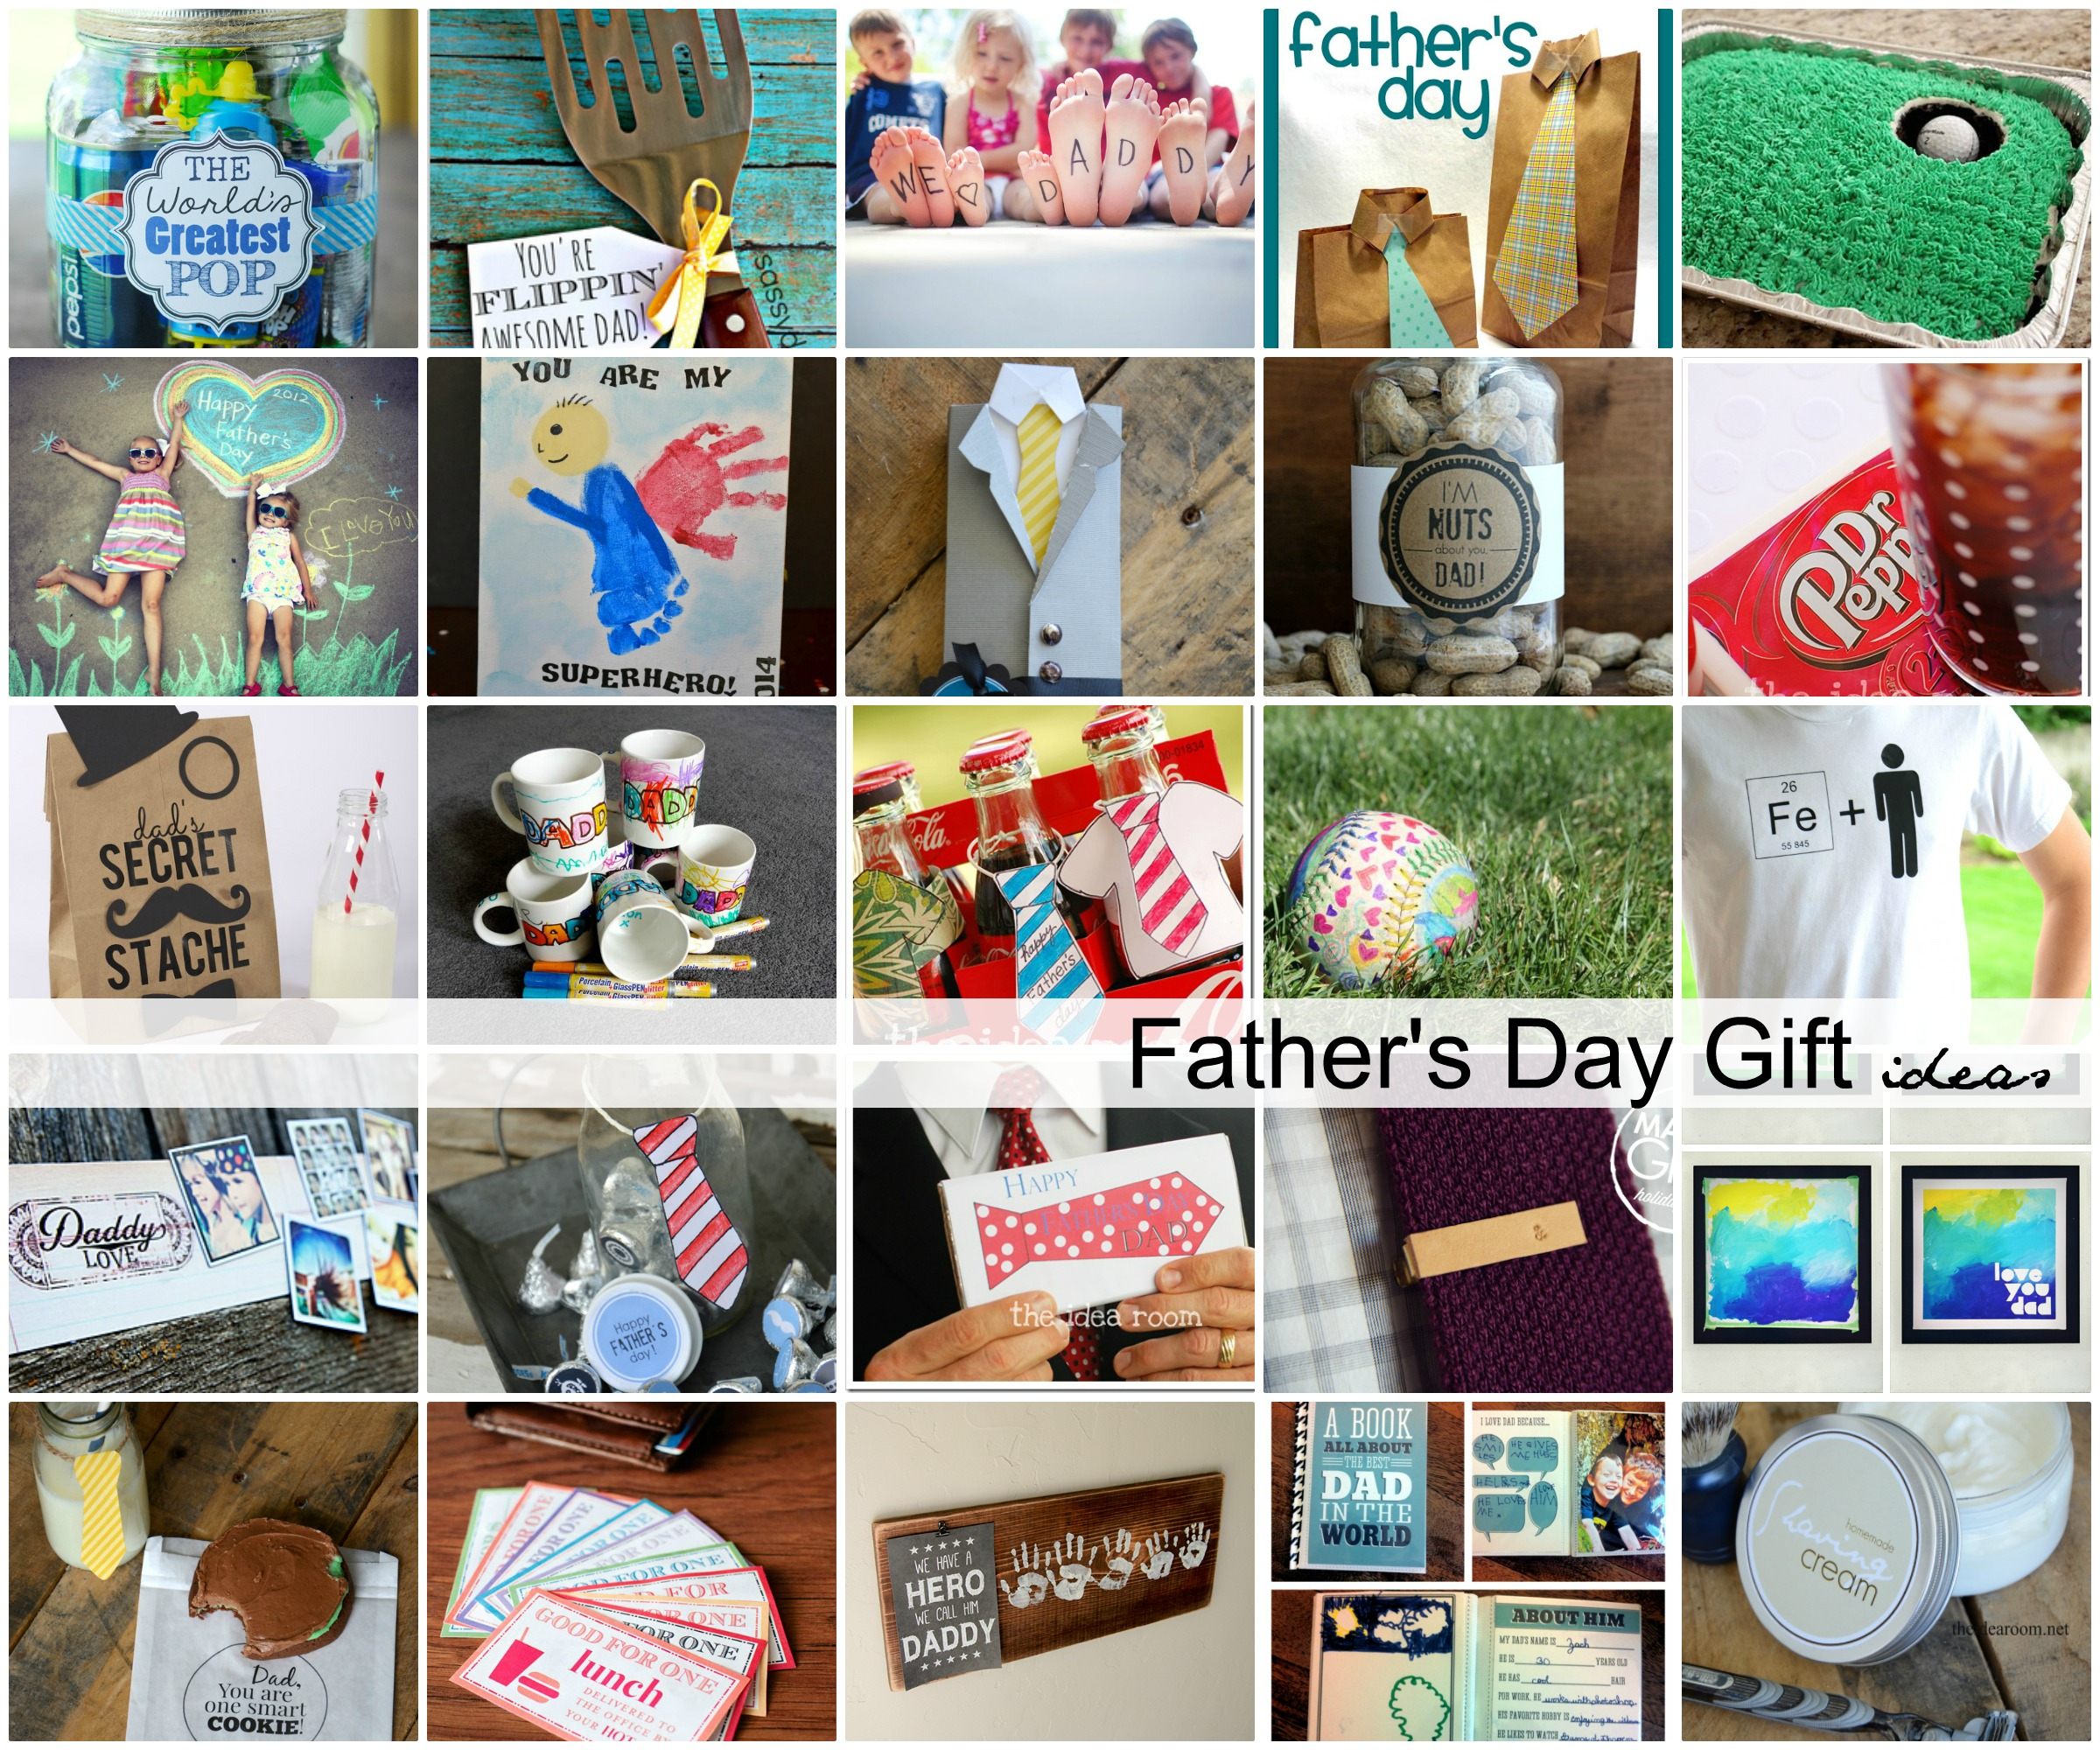 Father's Day Gift Ideas  The Idea Room. Iphone 4s Actual Size. Prank Divorce Papers. Legal Nurse Consultant Invoice Template 432537. Sample Of Appeal Letter Examples College. Community Service Hours Form Template. Free Responsive Dreamweaver Template. When To Follow Up After A Job Interview Template. Resume Examples For College Students Template